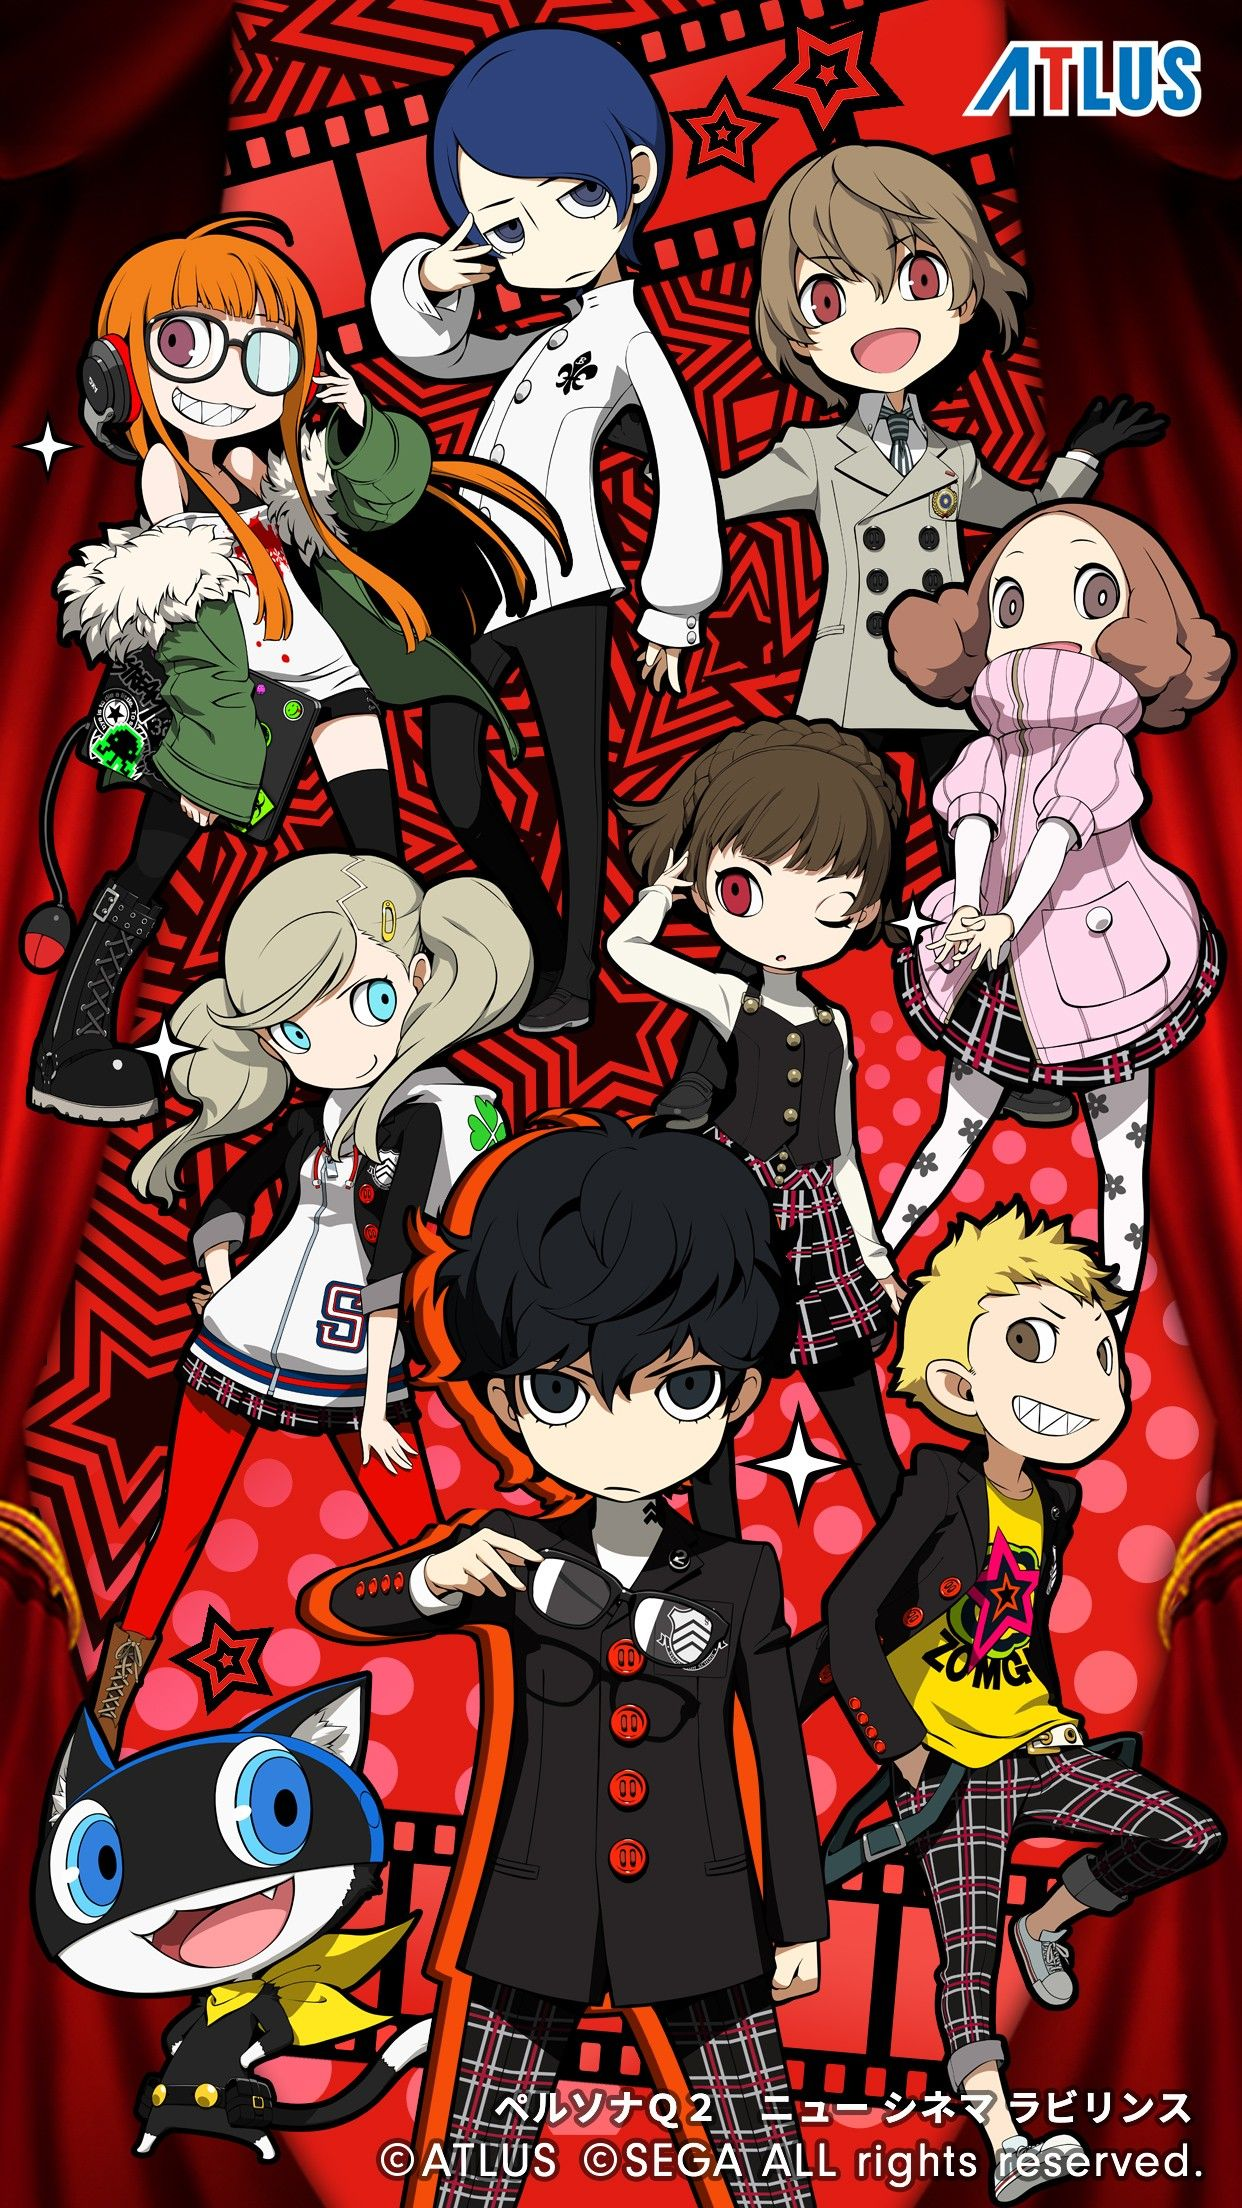 Persona Q2 New Cinema Labryinth - Persona 5 | Time to make a